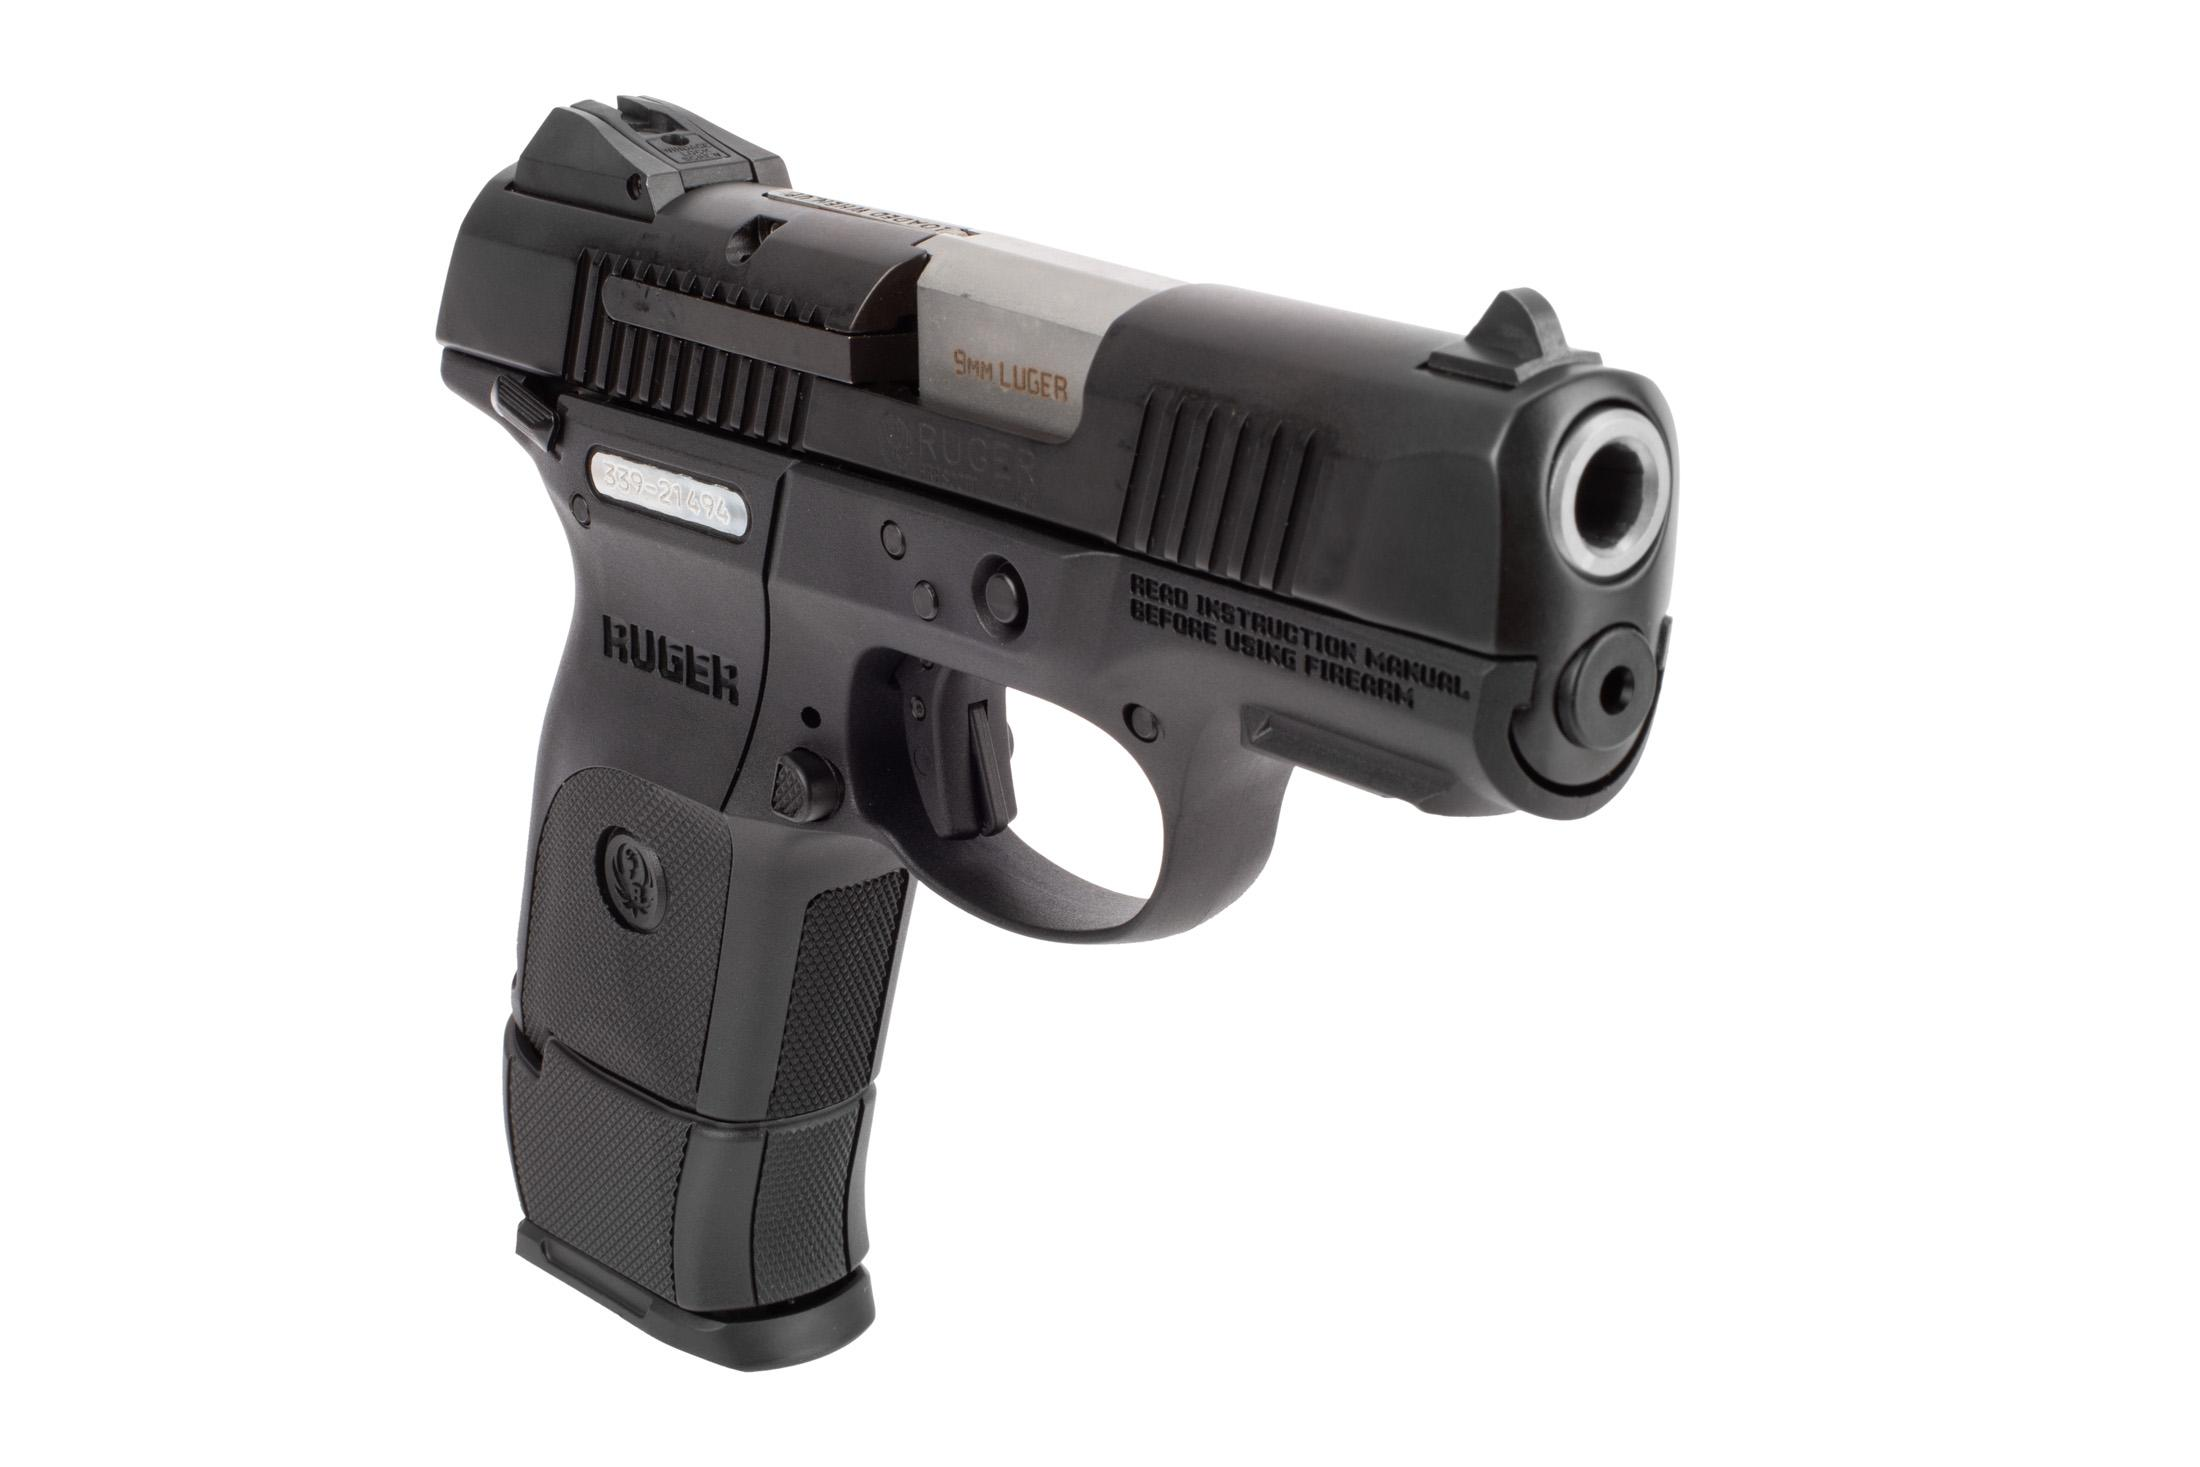 The Ruger SR9c has a frame and trigger safety